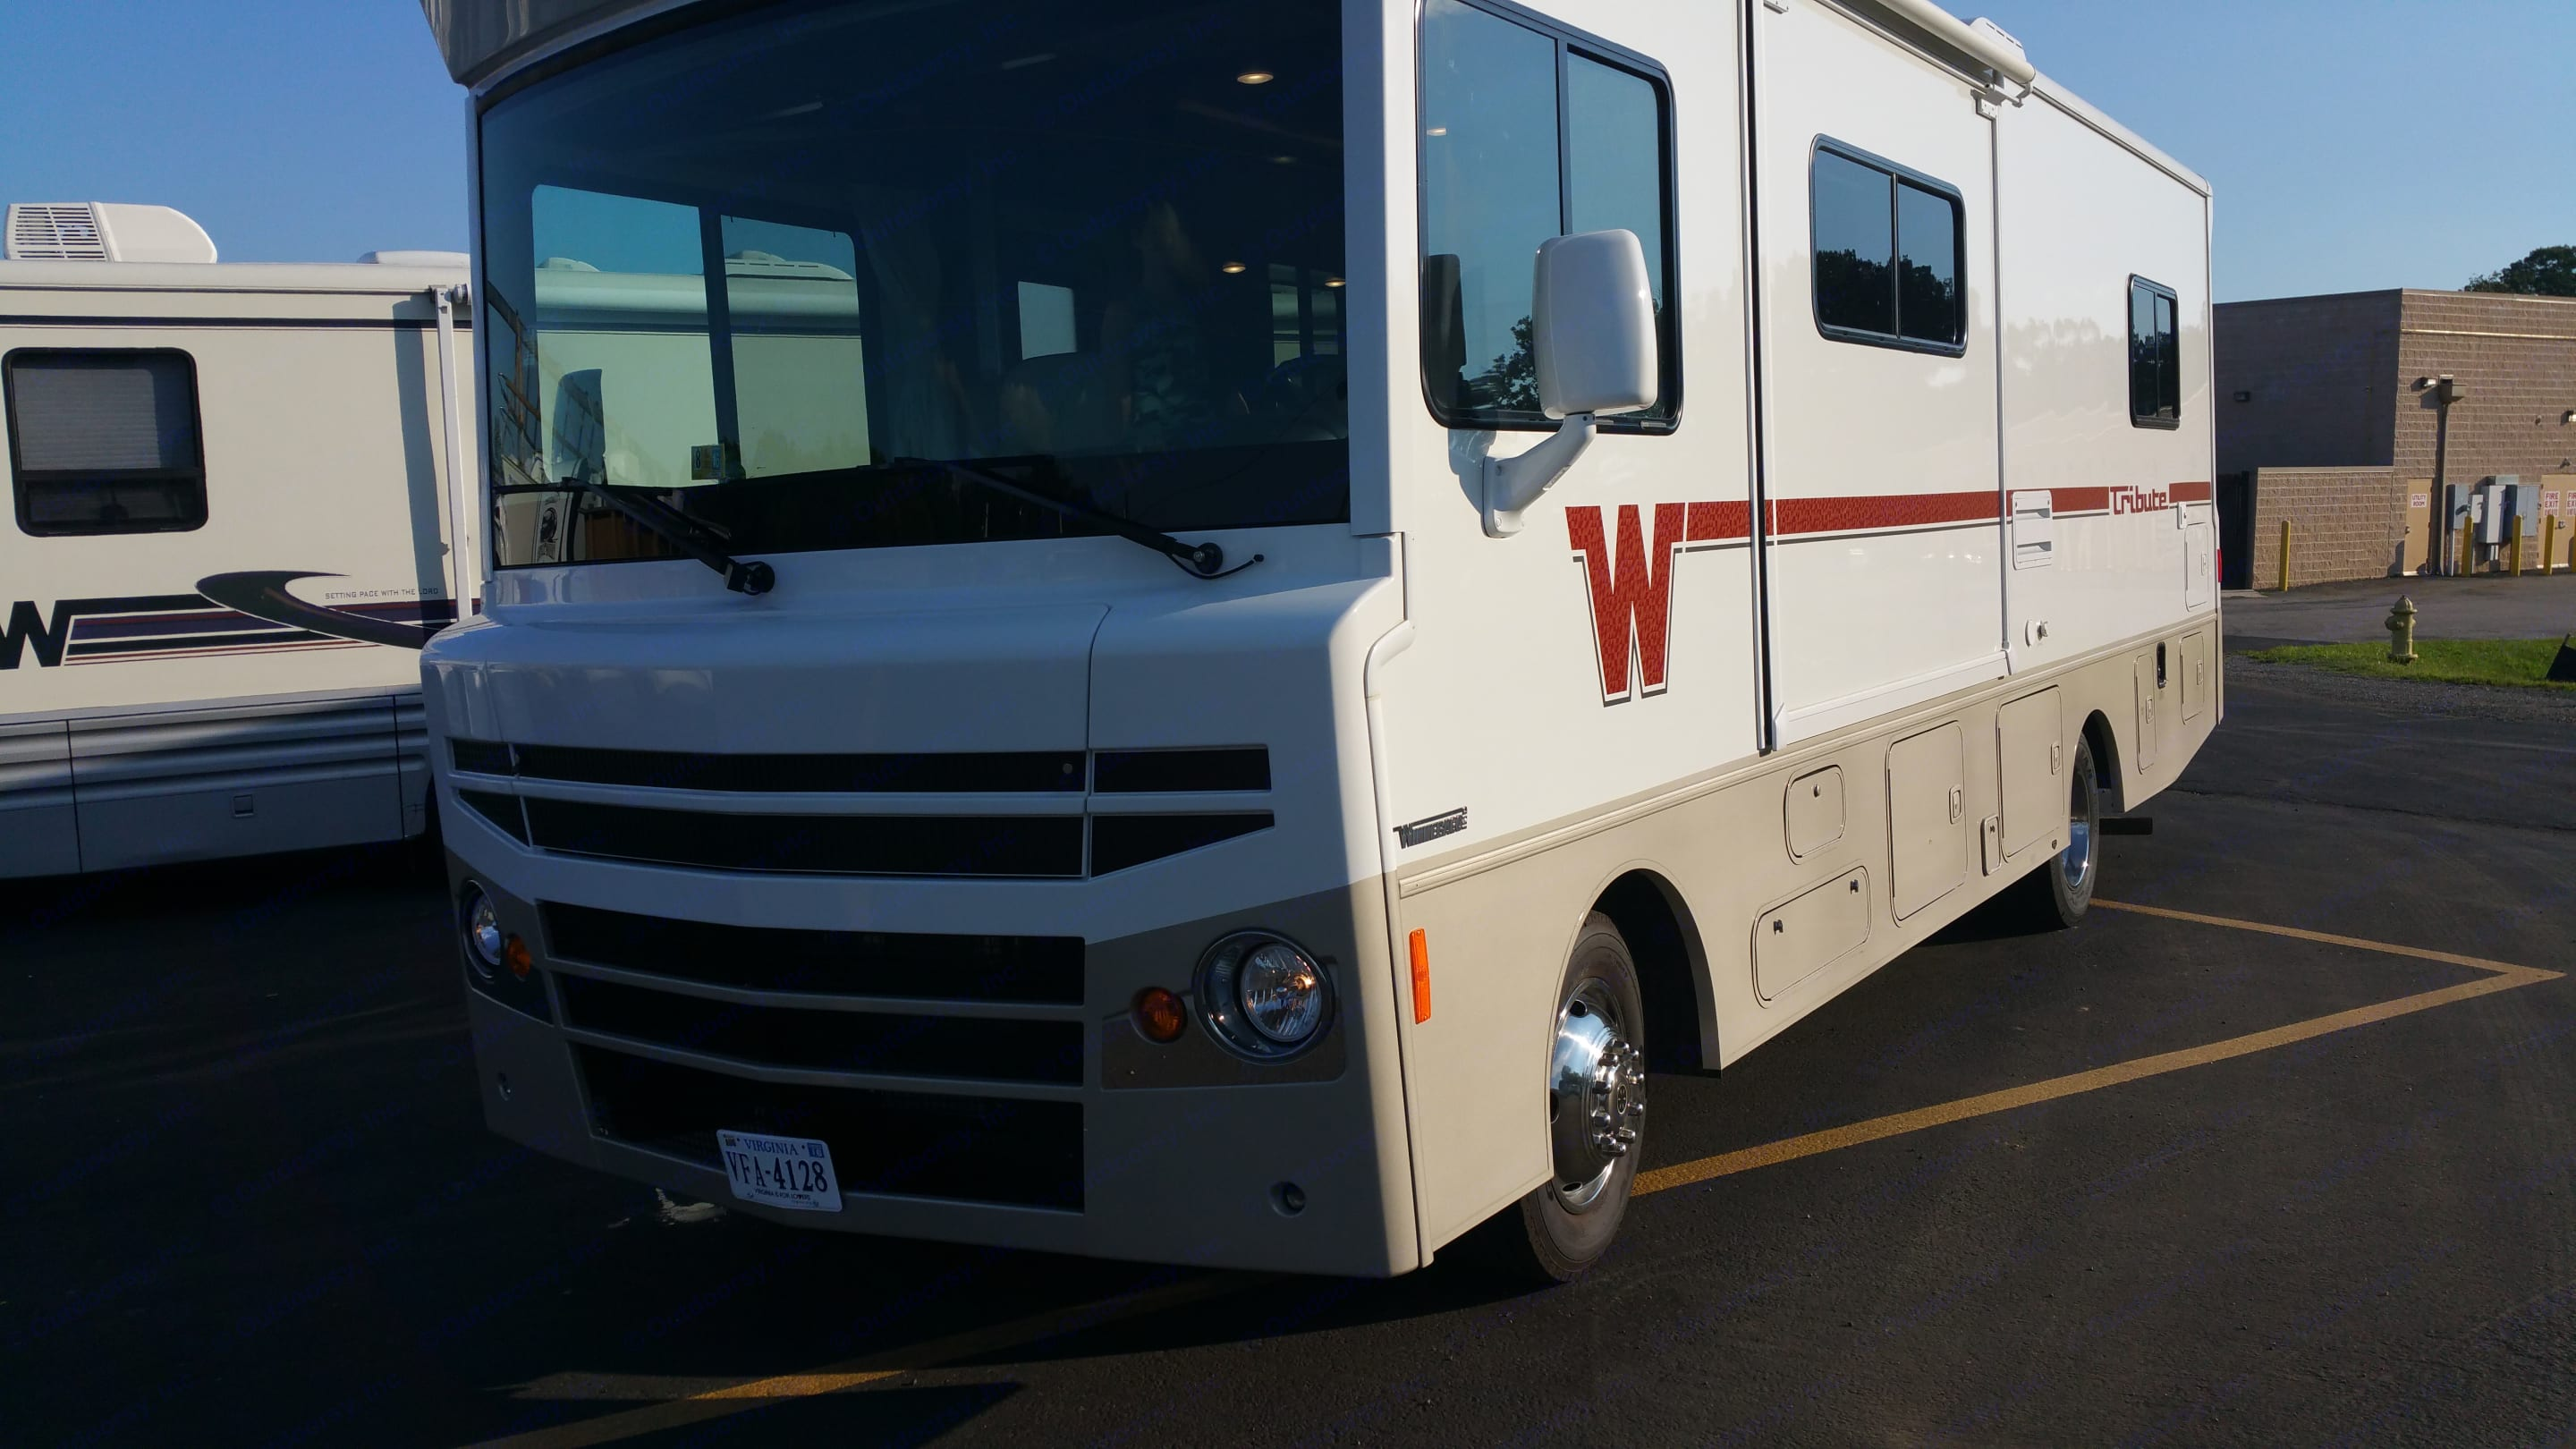 """2015 model, a tribute to the """"Flying W"""" of the Winnebago.  Turns heads and attracts compliments from other RVers. Itasca Tribute 2015"""